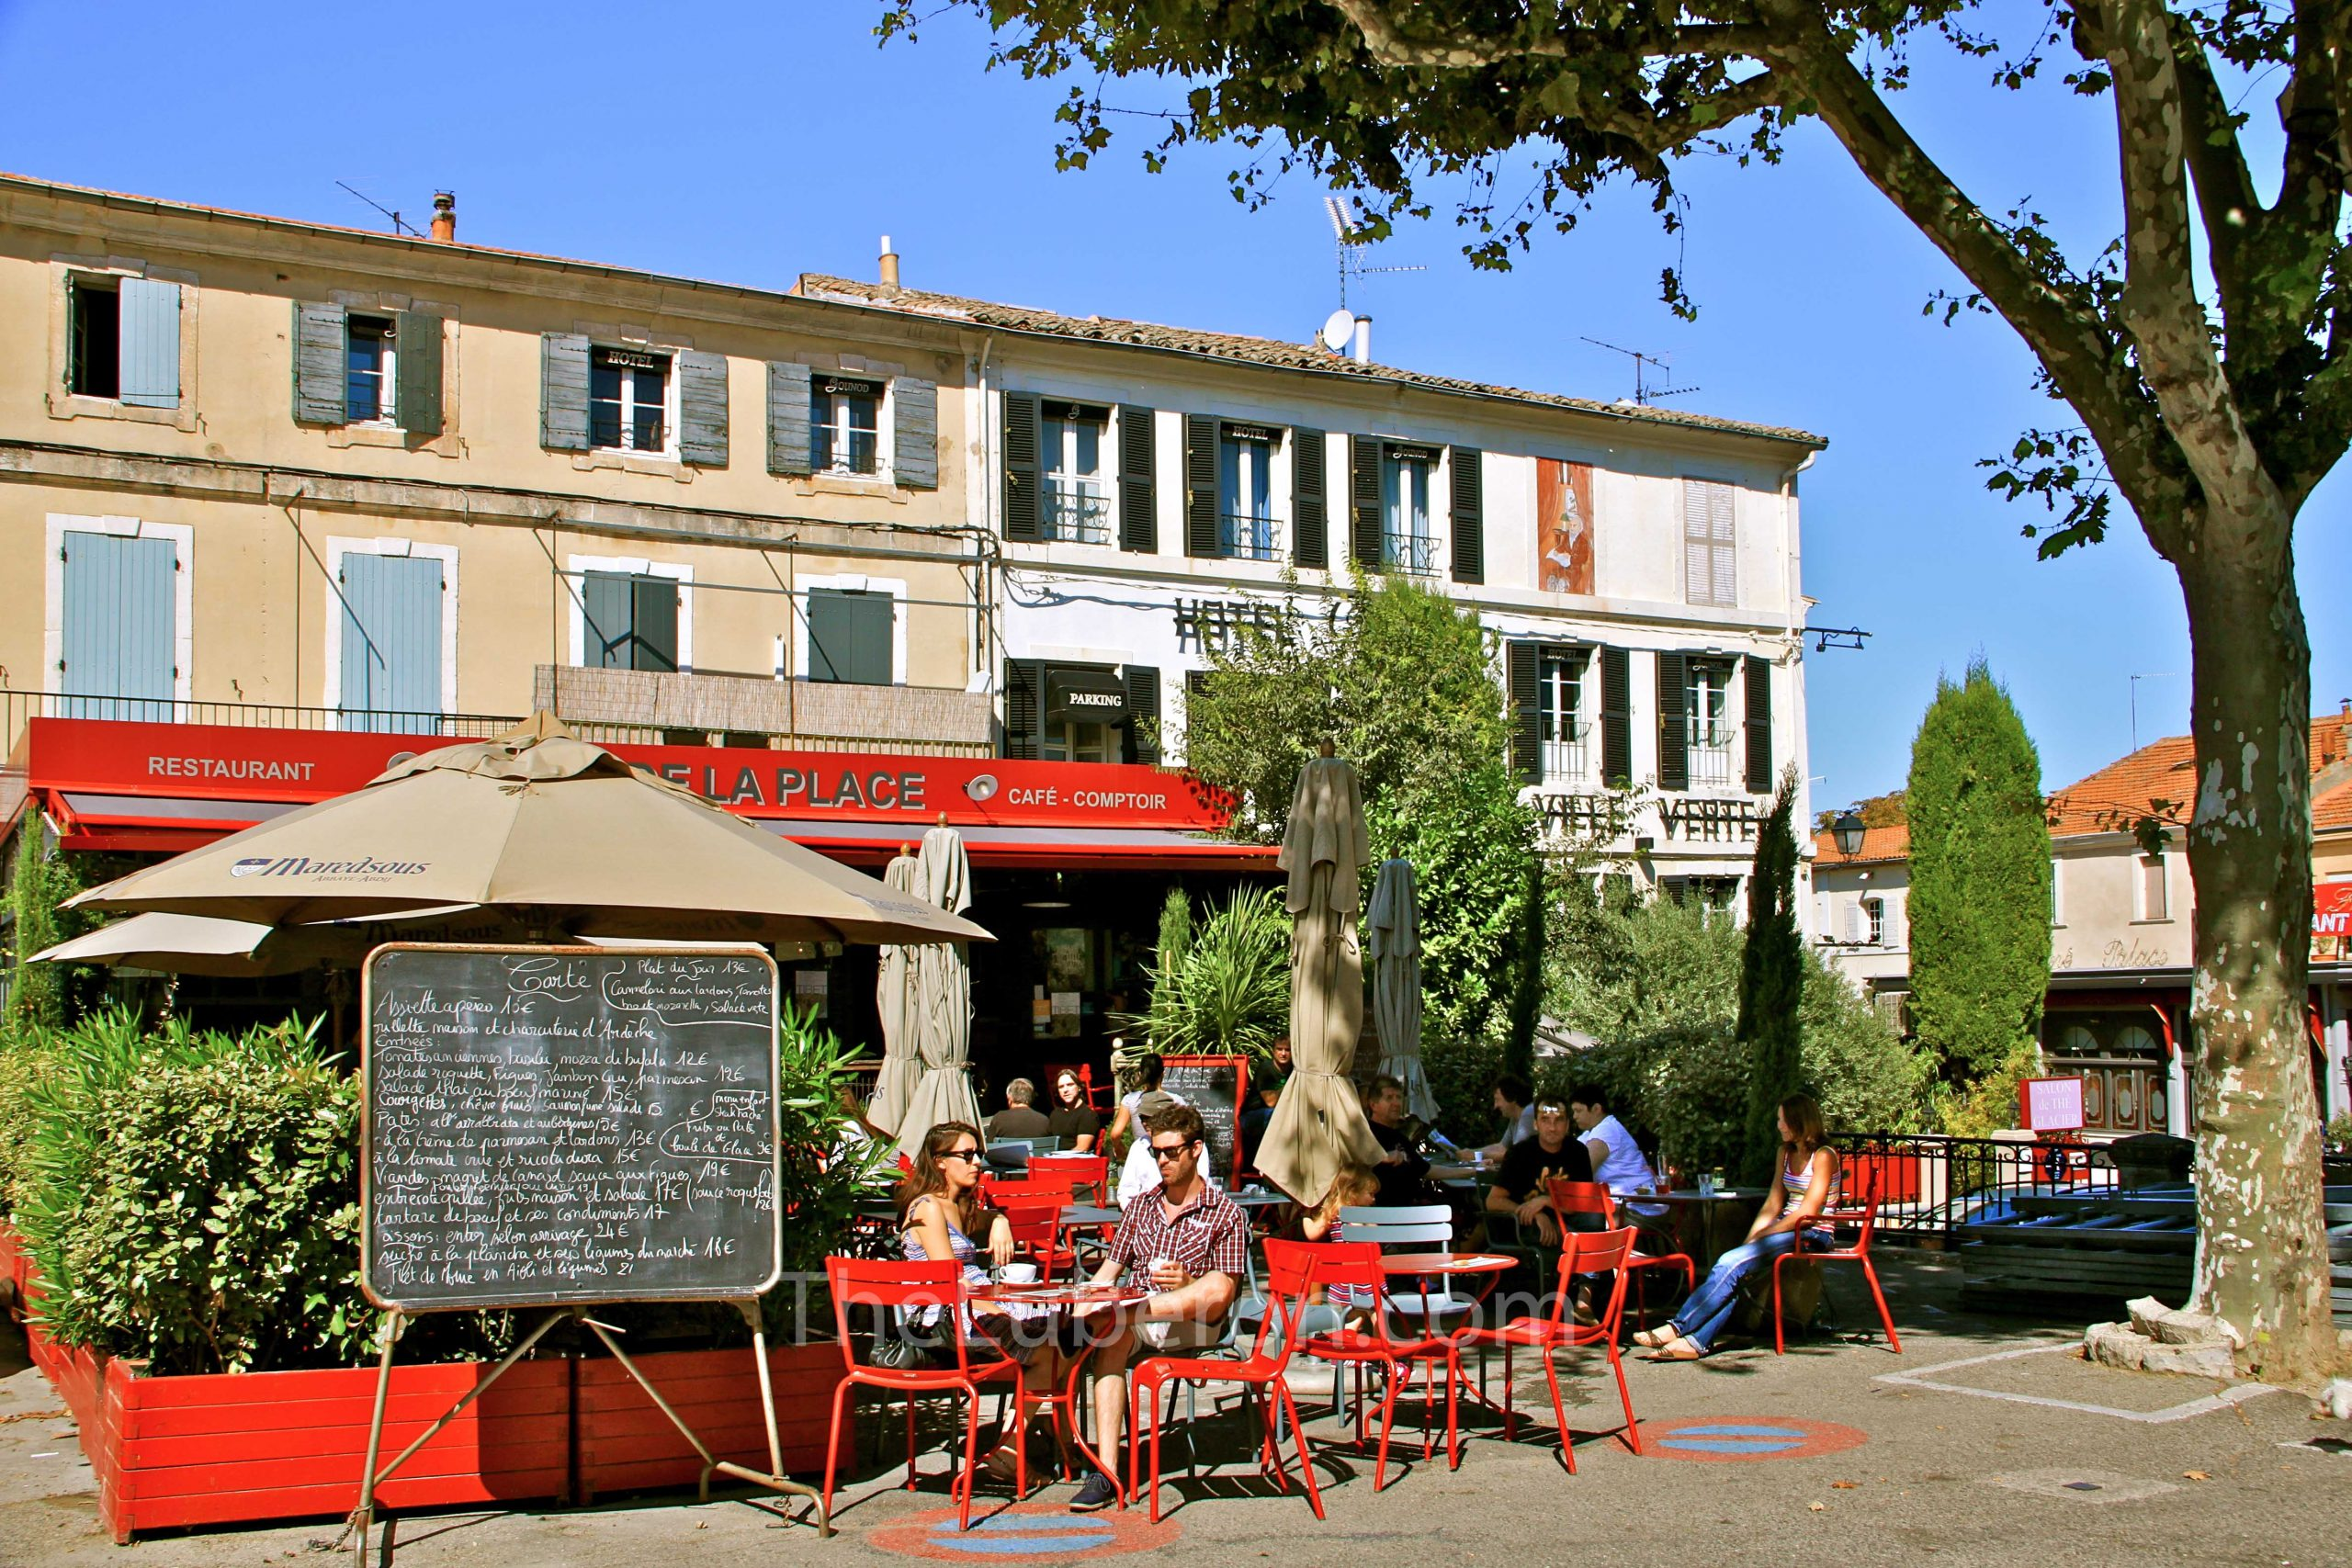 Central square restaurant in St-Remy-de-Provence